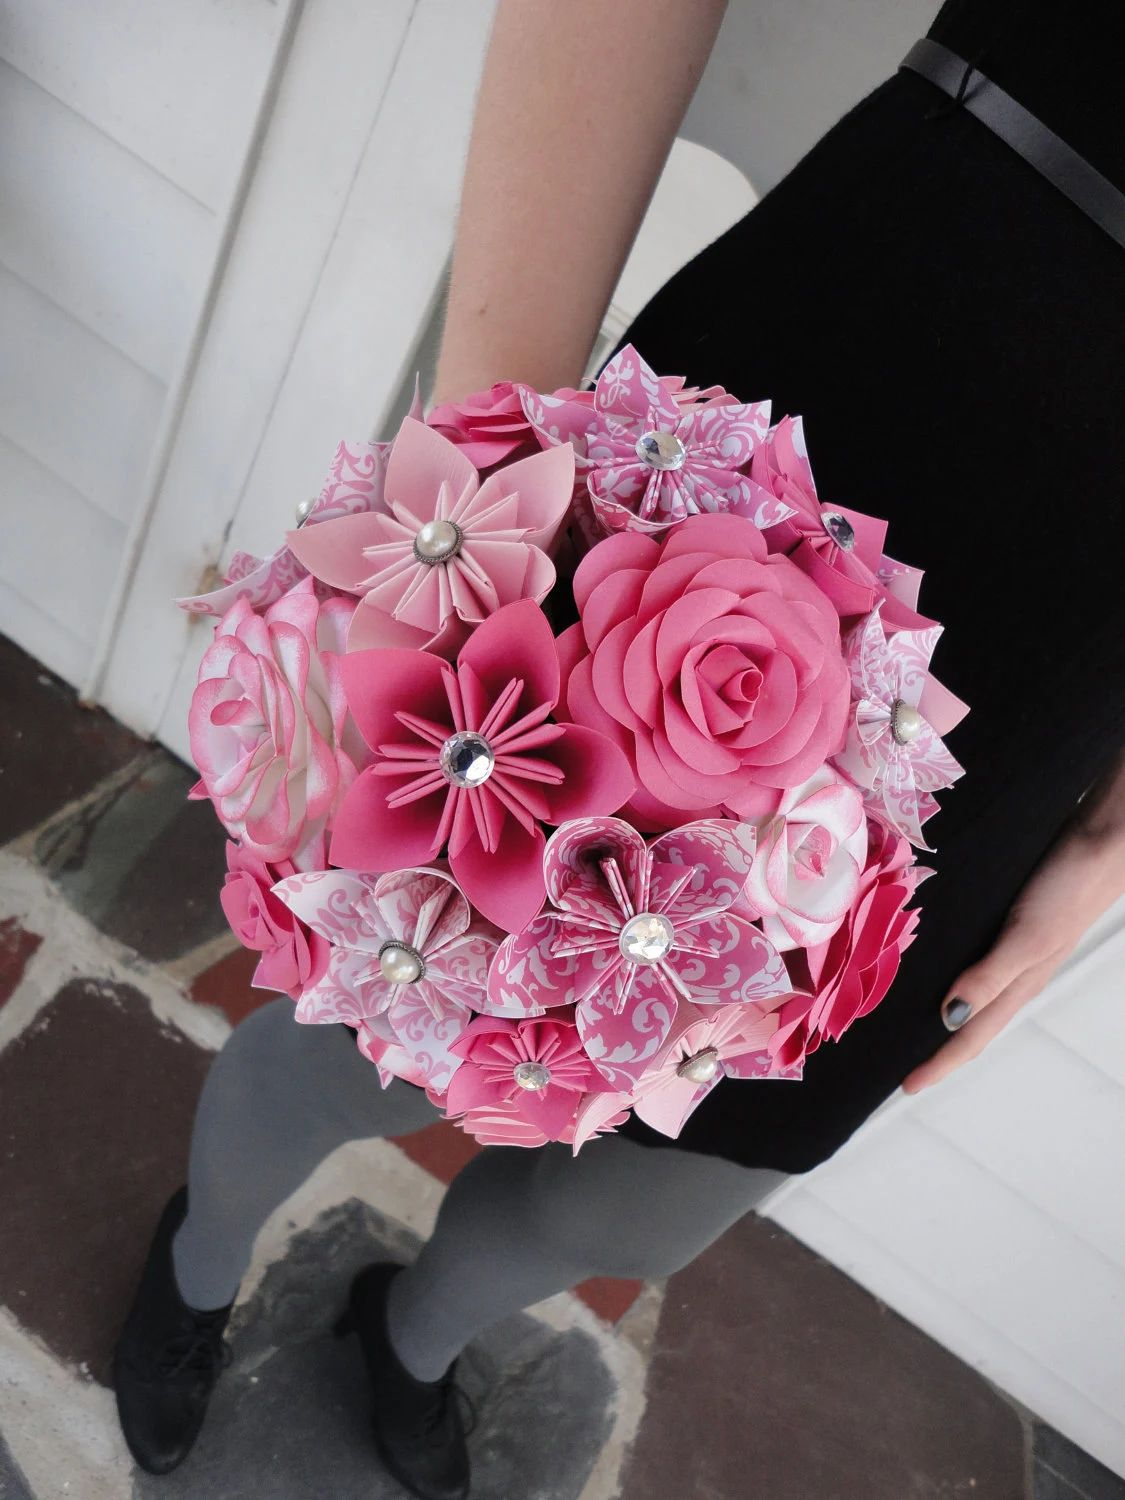 how to make a flower bouquet out of paper